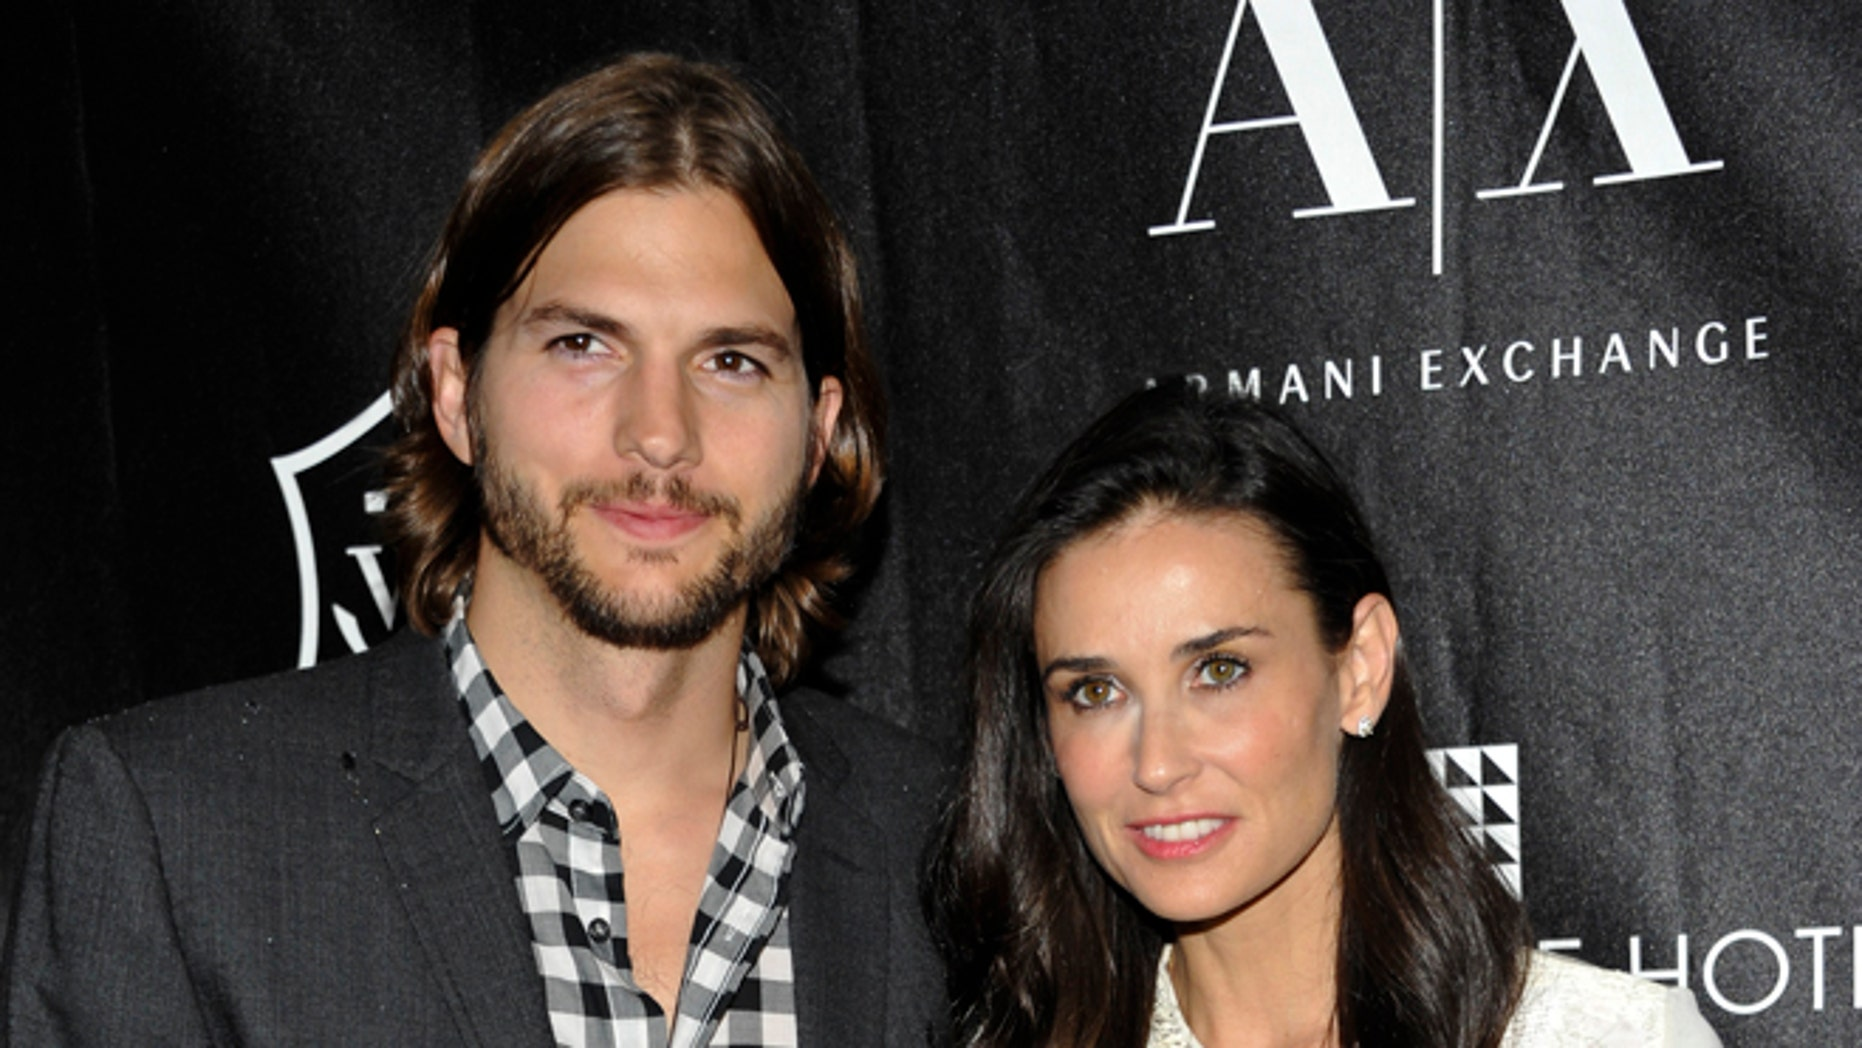 June 9, 2011: In this file photo, actors Ashton Kutcher and Demi Moore attend the first annual Stephan Weiss Apple Awards at the Urban Zen Center in New York.